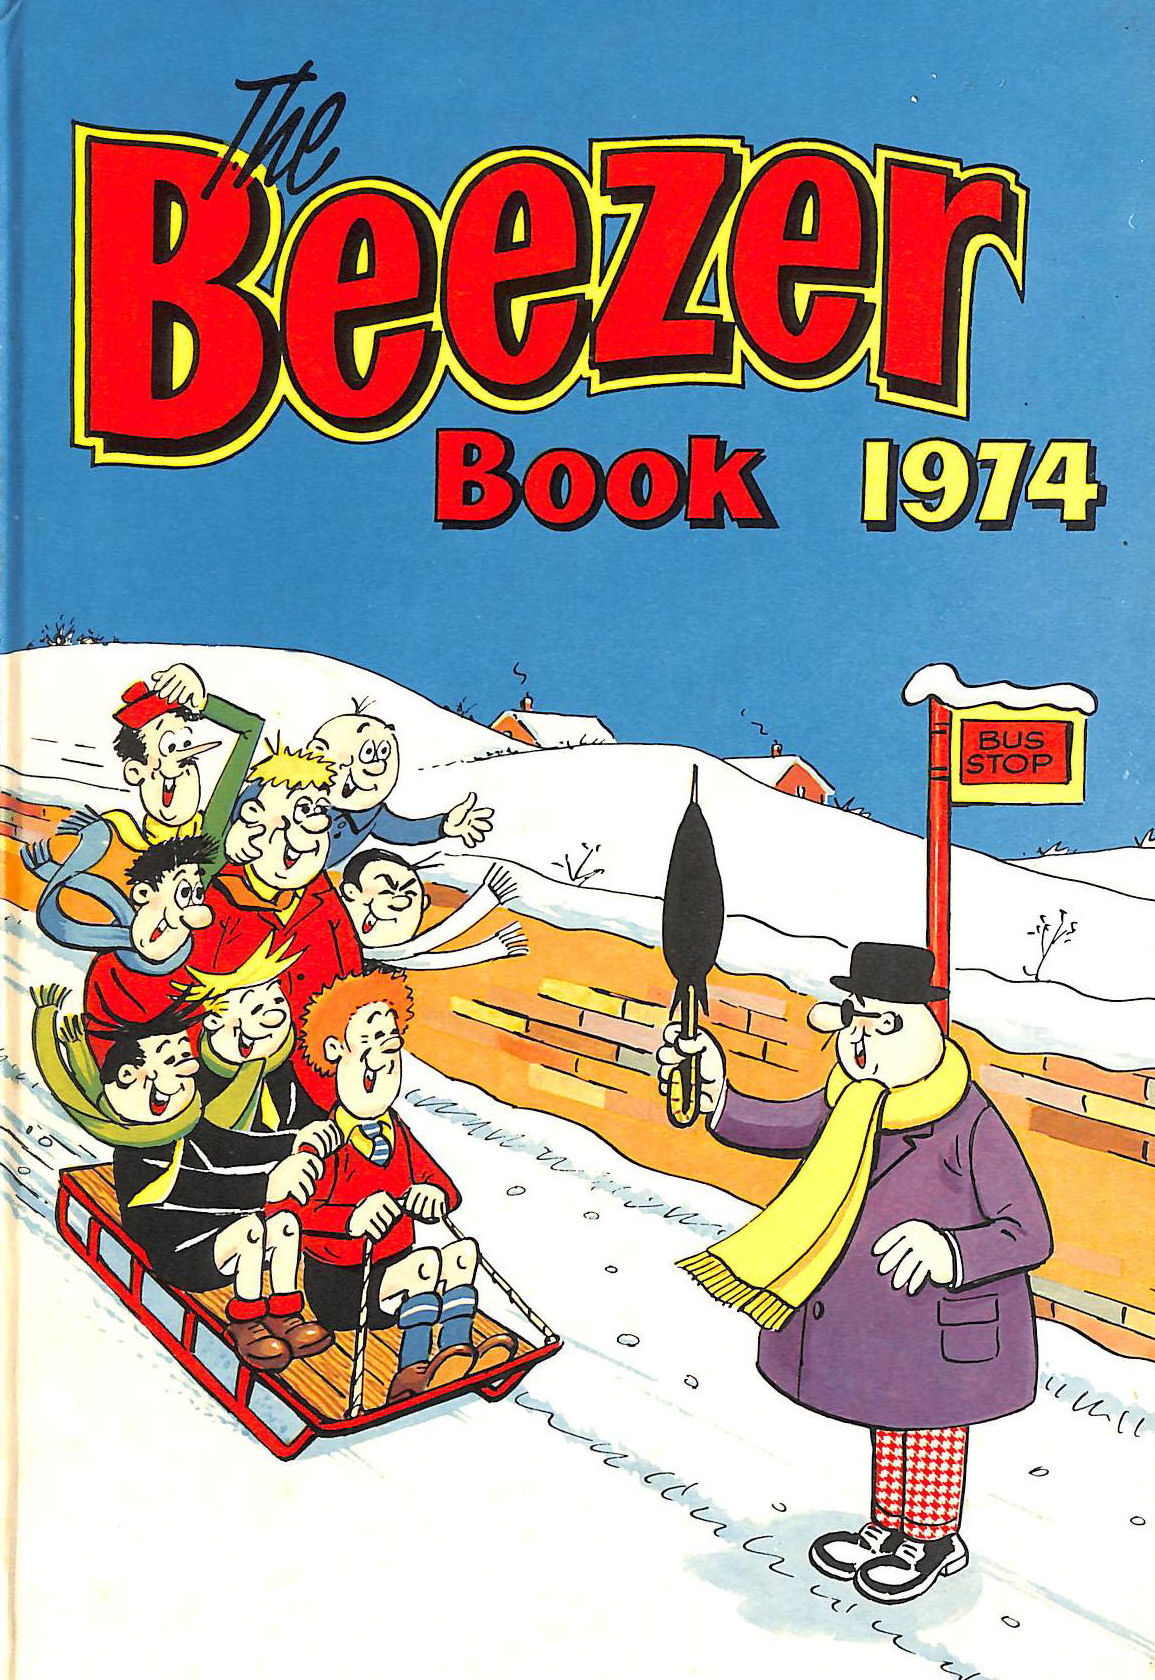 Image for The Beezer Book 1974 (Annual)